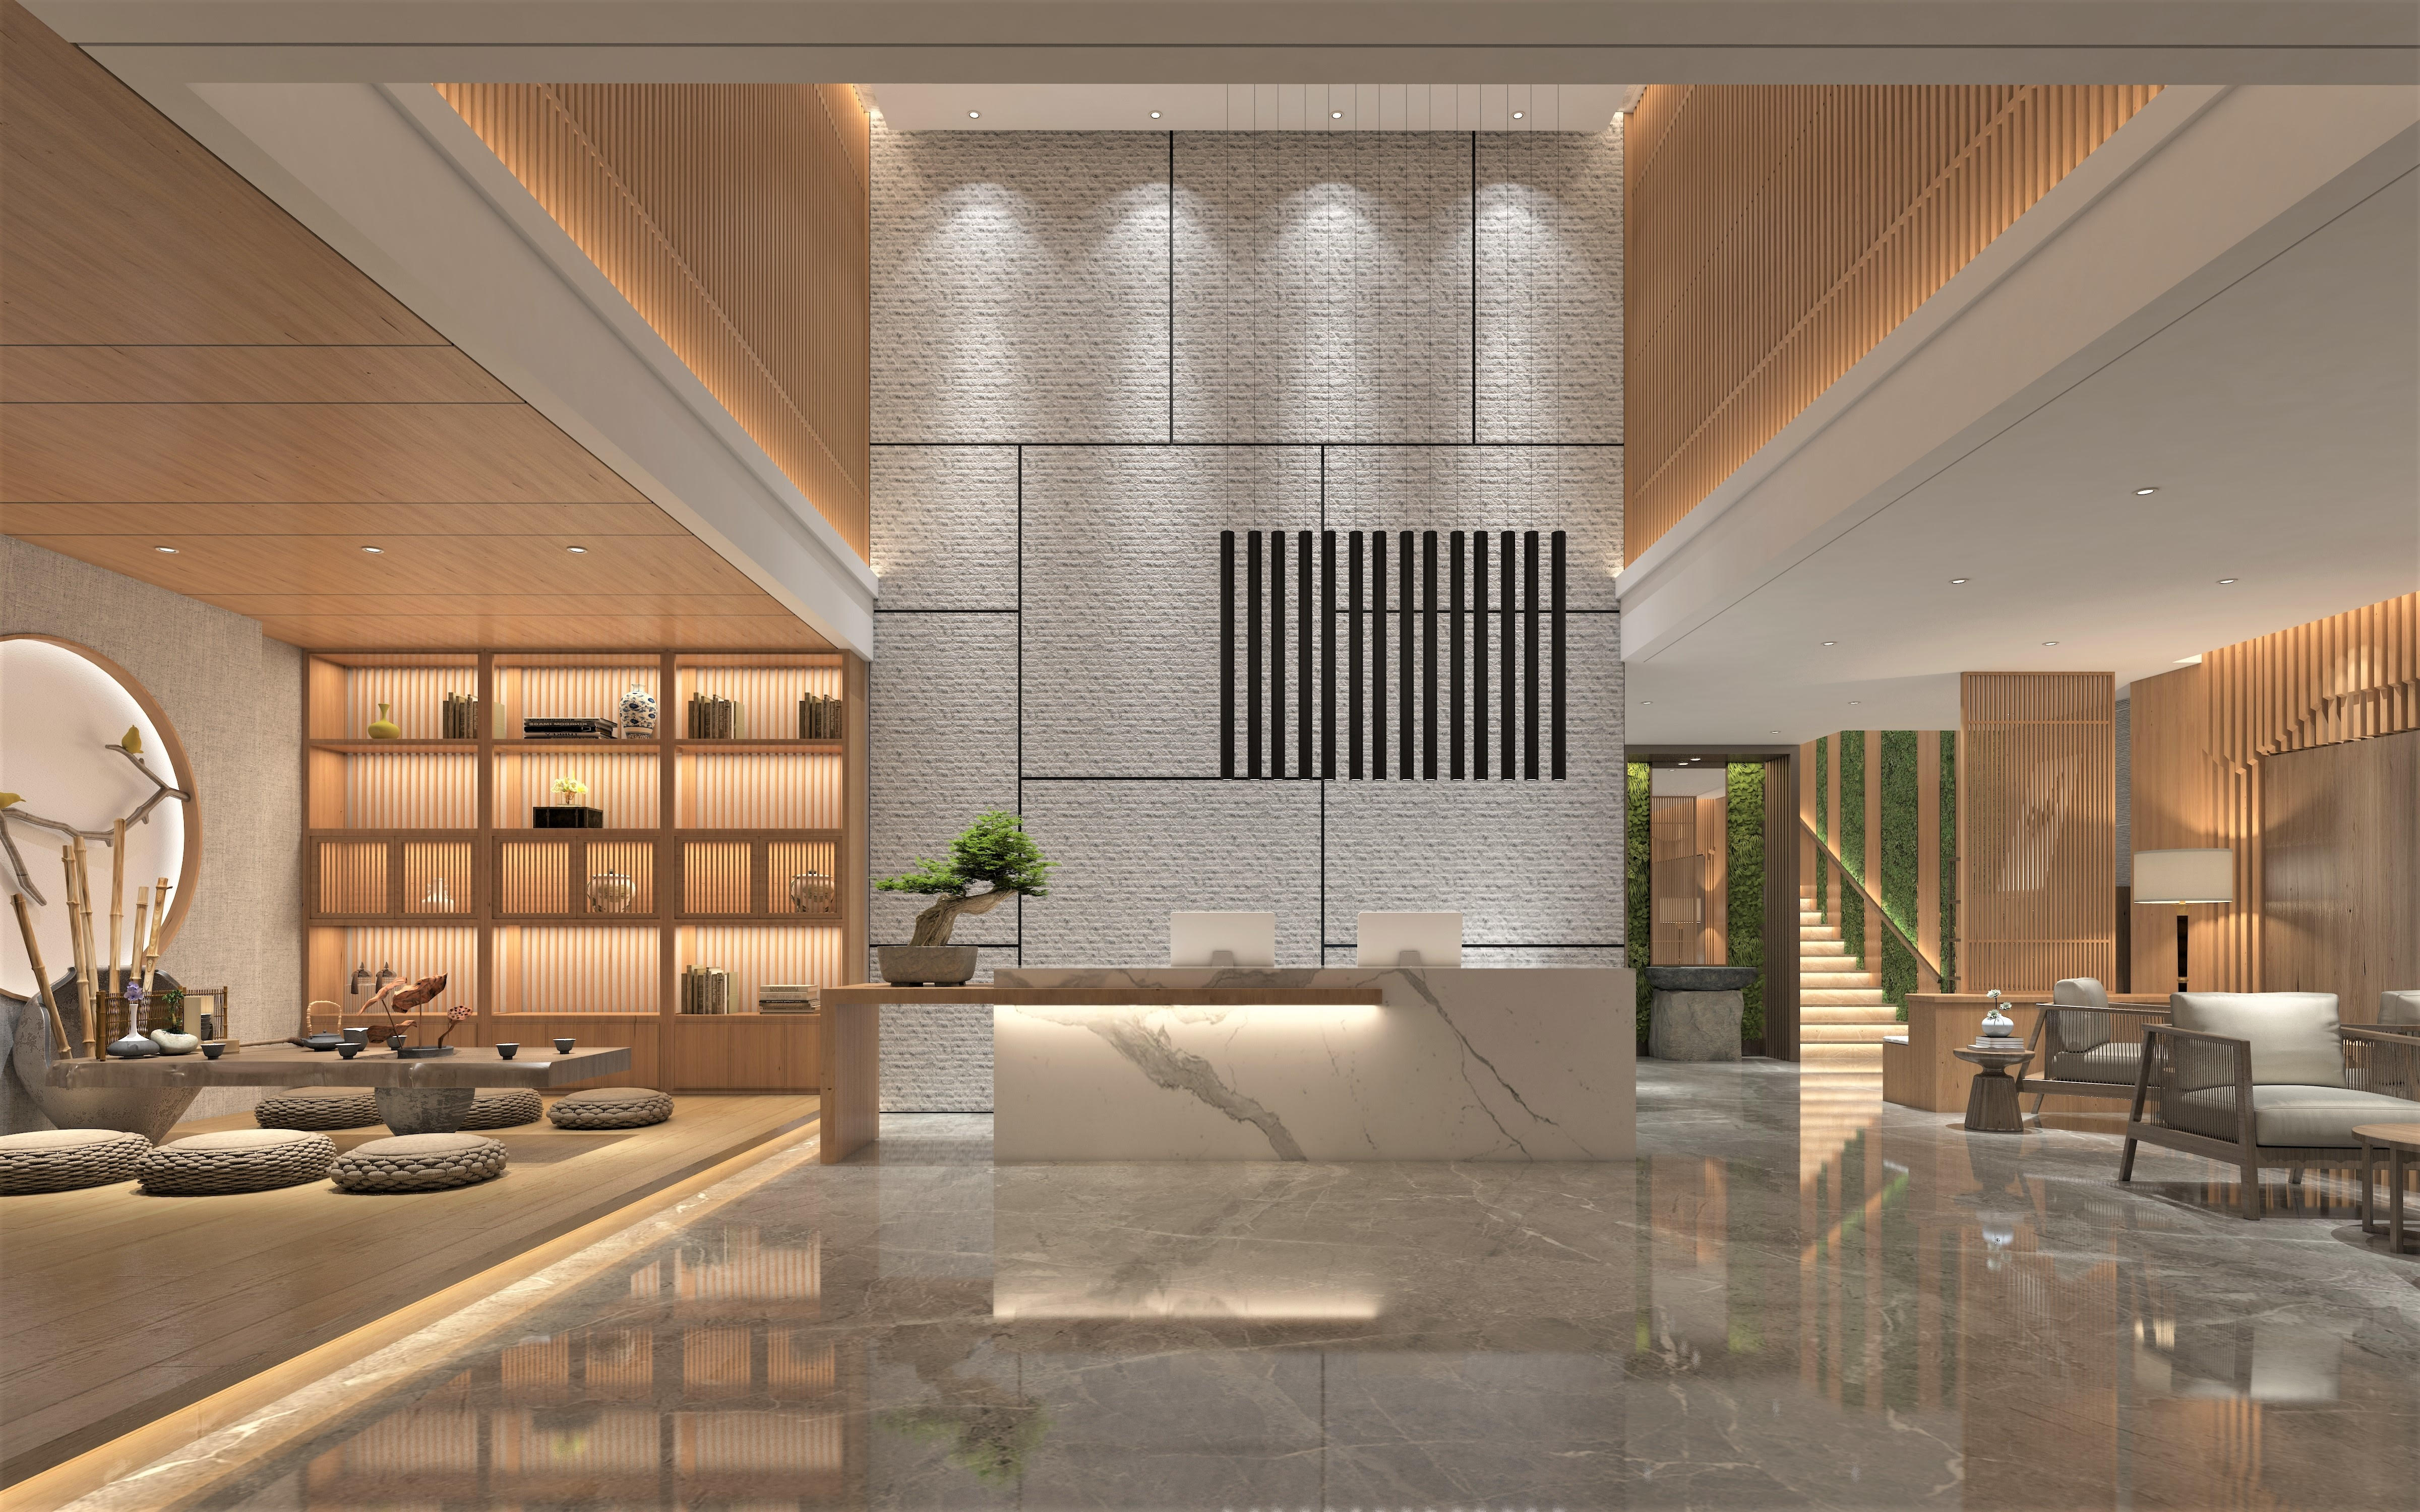 5 Star Hotels and Luxury Hotel Groups have opened a multitude of luxury hotels around the world, all featuring their own unique elements like grand entrances